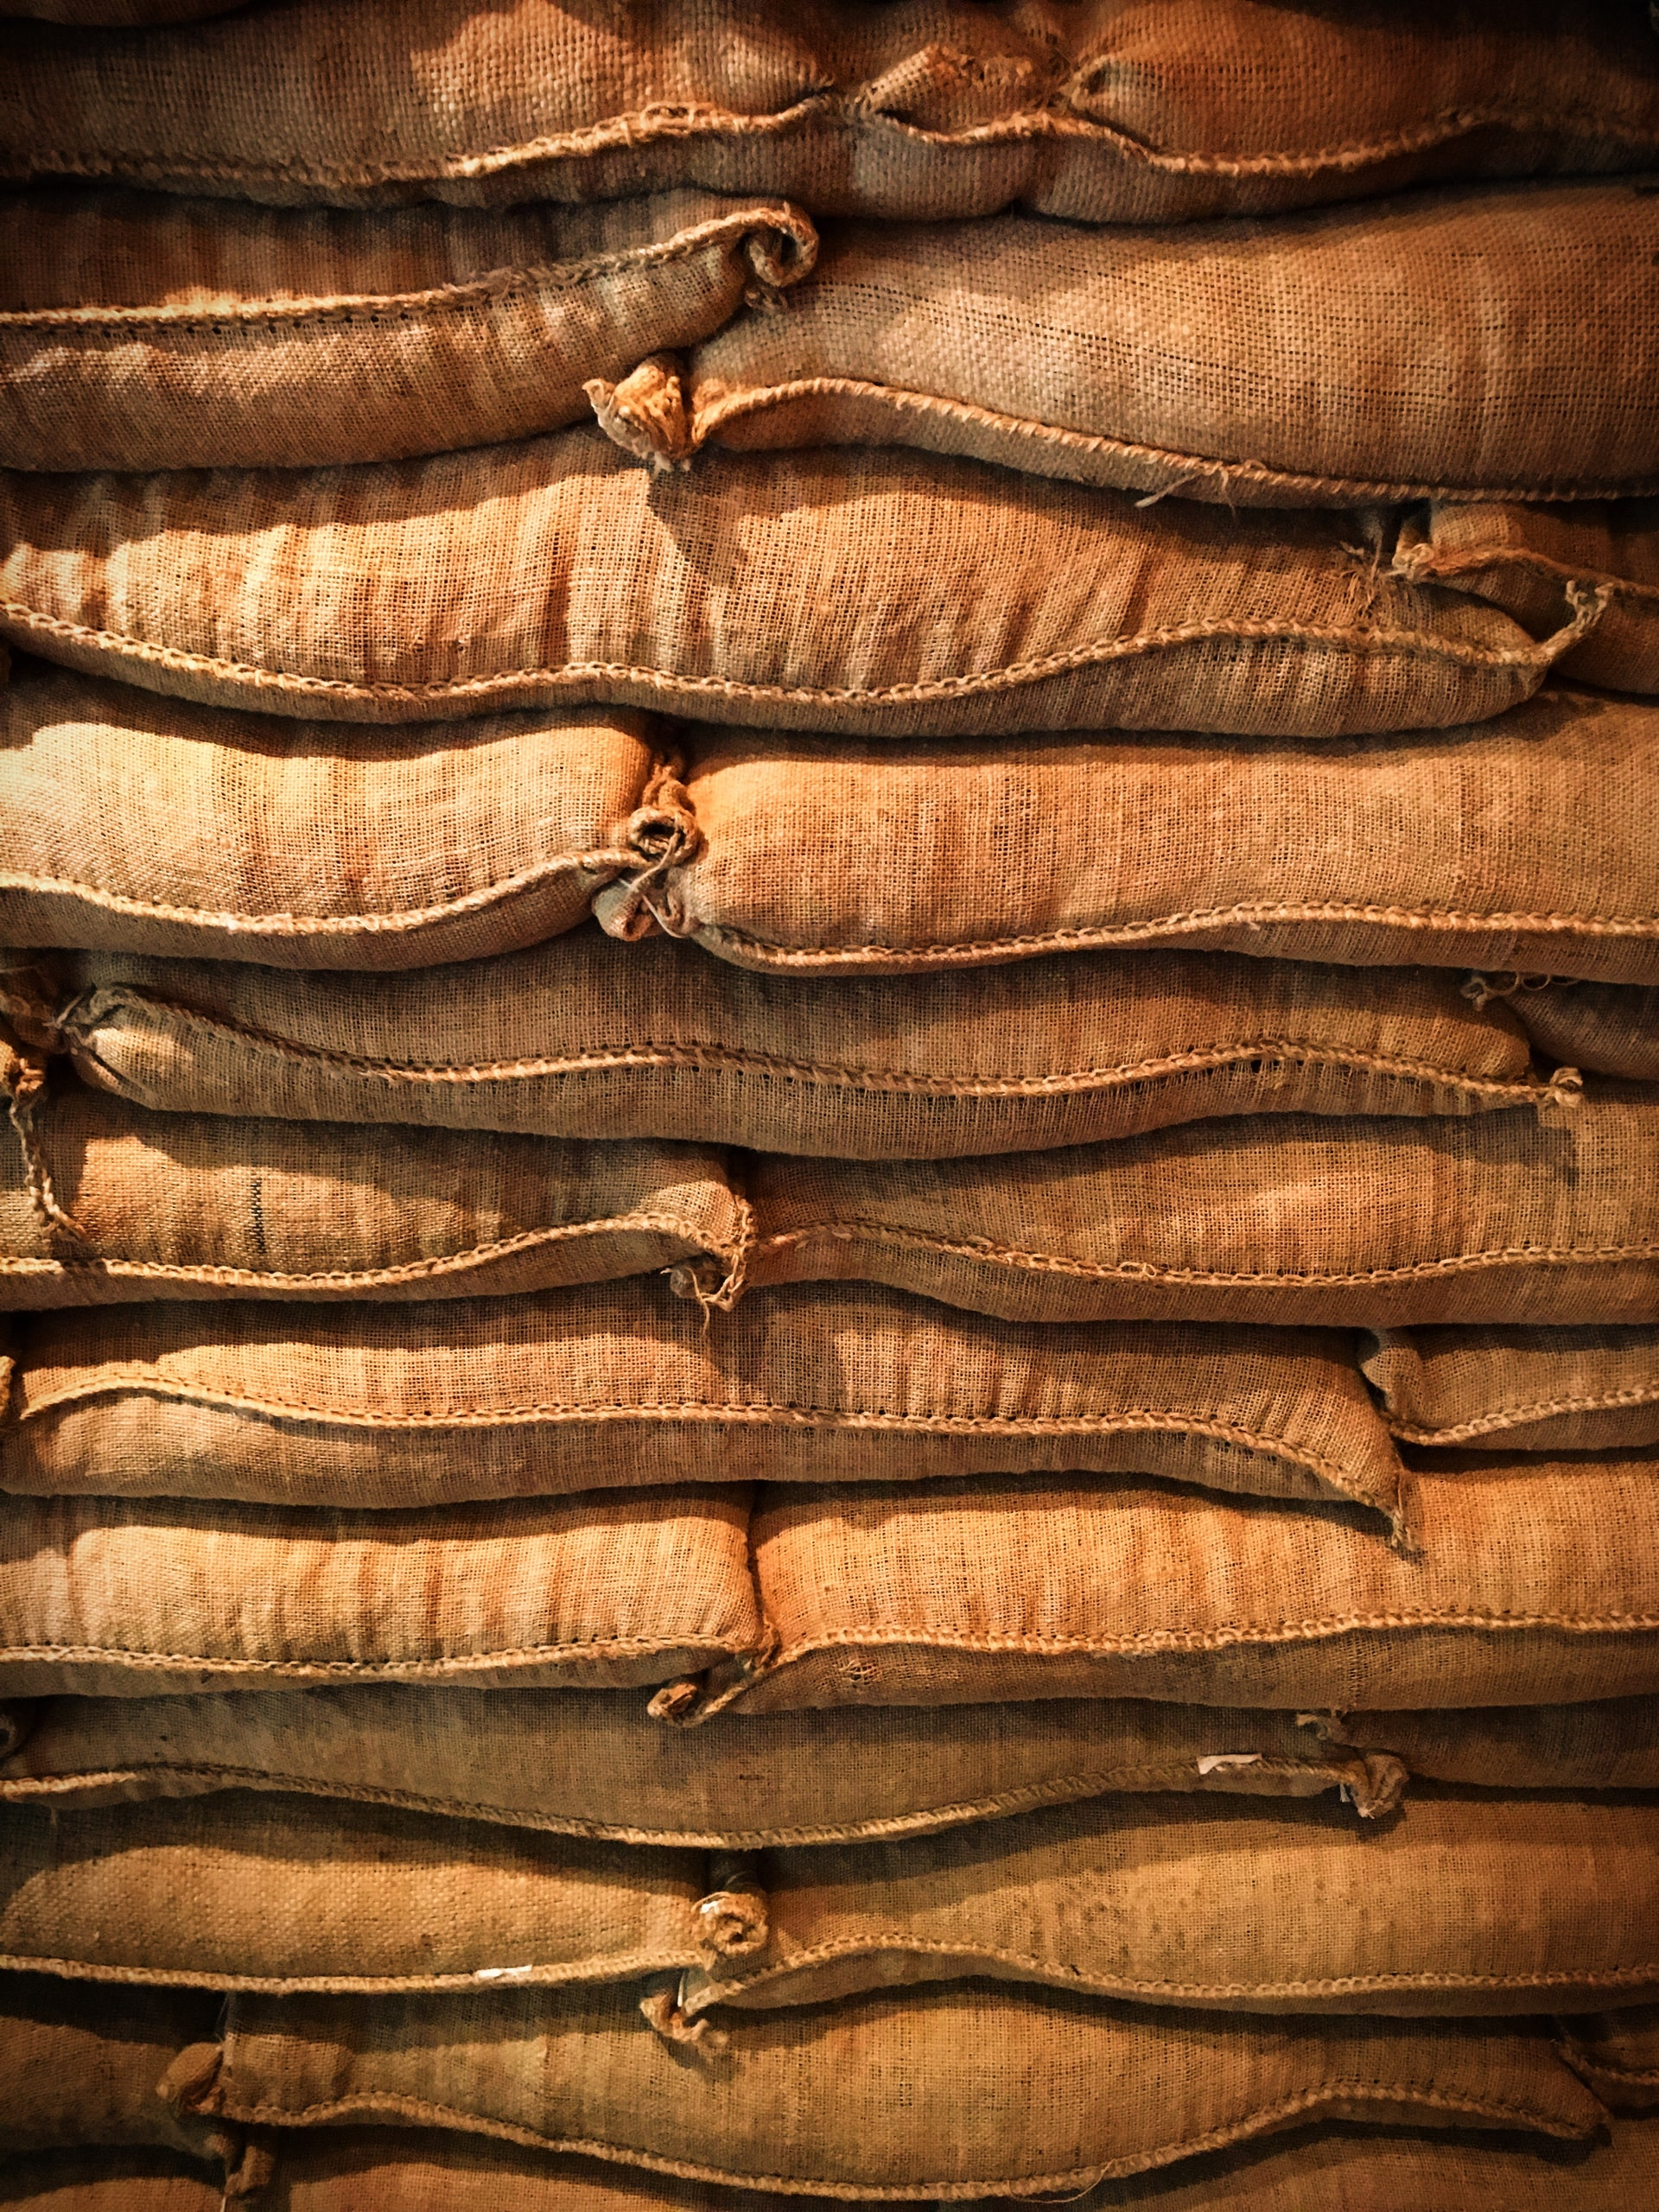 Commodity Prices Surged In December 2020 - Pink Sheet